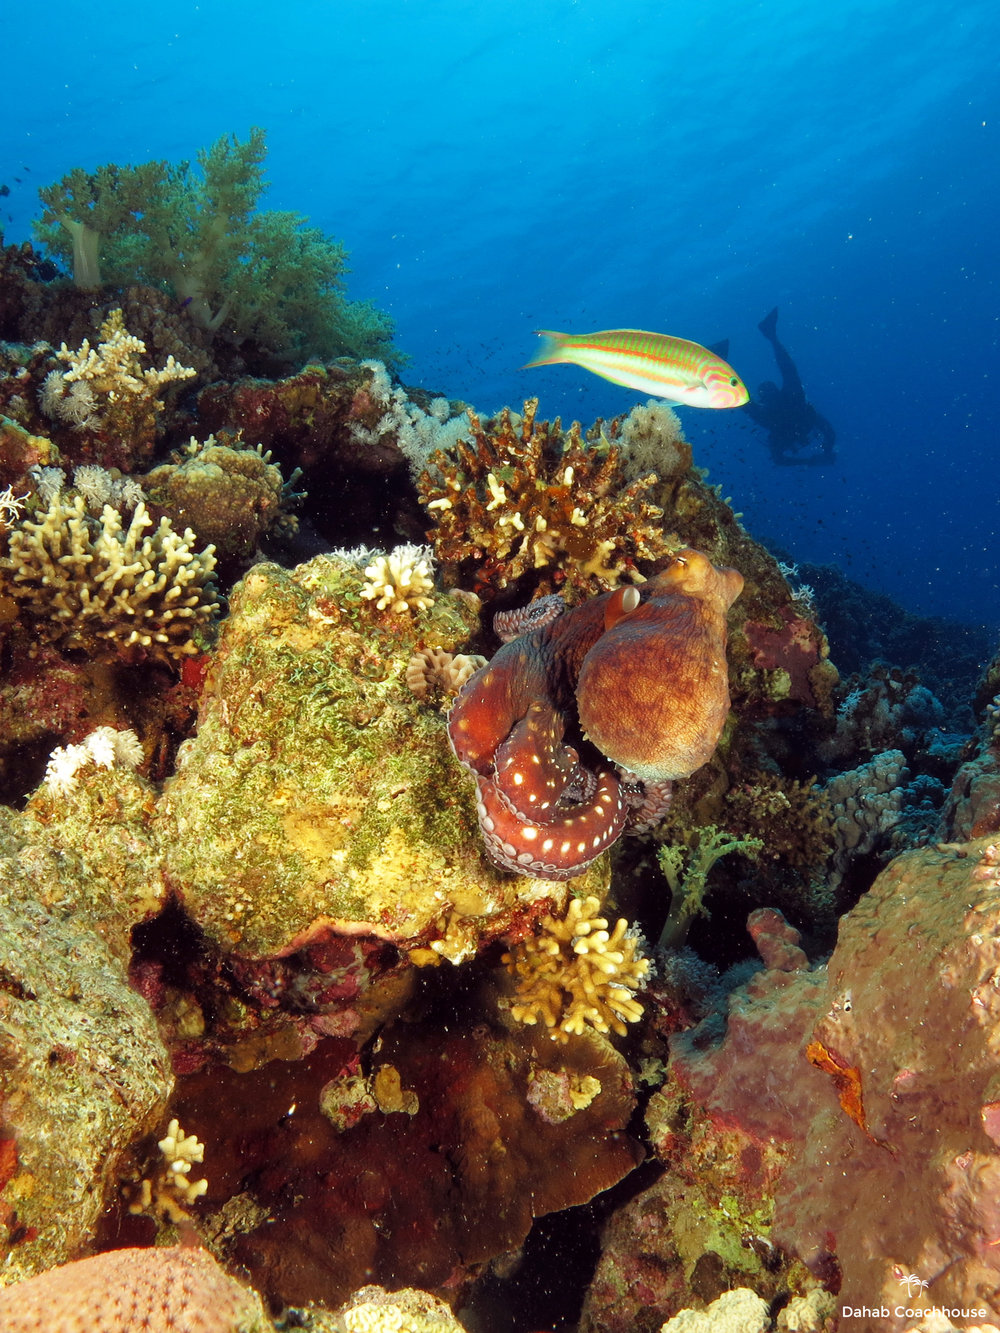 Dahab_Coachhouse_Egypt_Red_Sea_Diving_Beach_Accommodation_Holiday_Trave_Octopus.JPG